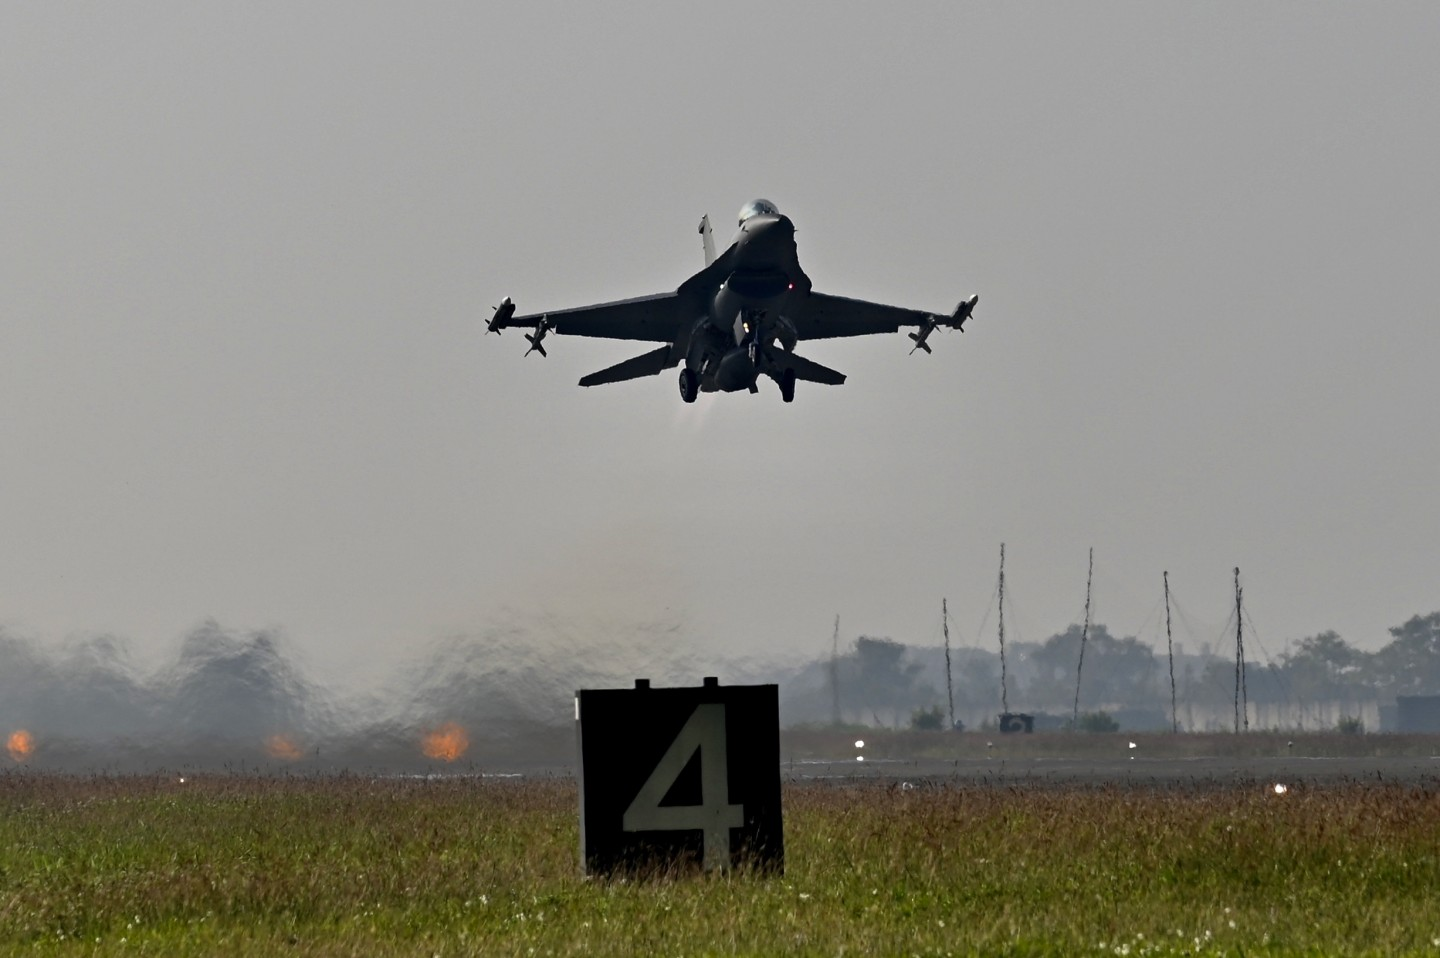 An armed US-made F-16V fighter takes off during an exercise at a military base in Chiayi, southern Taiwan on 15 January 2020. (Sam Yeh/AFP)